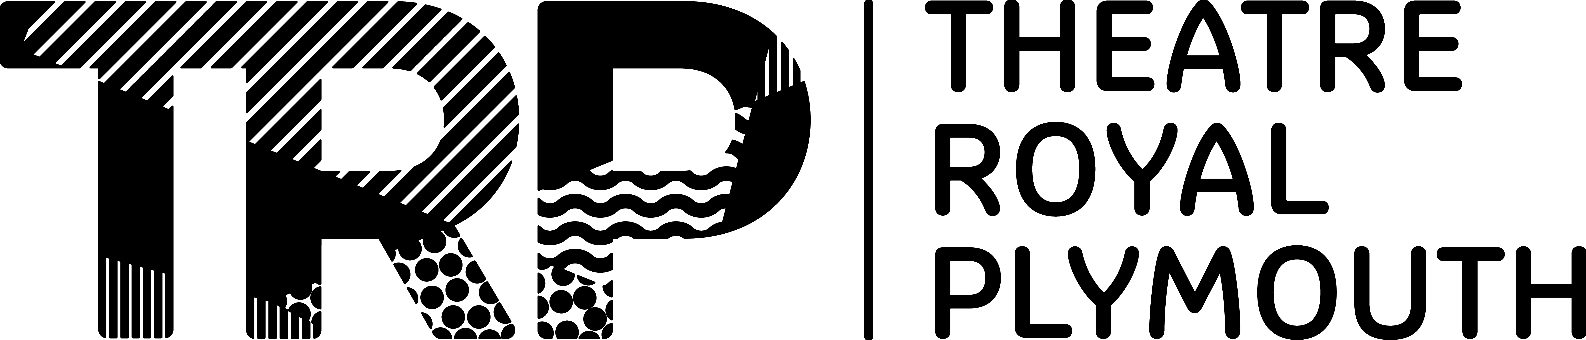 trp_logotype_bw_v2_medium-01